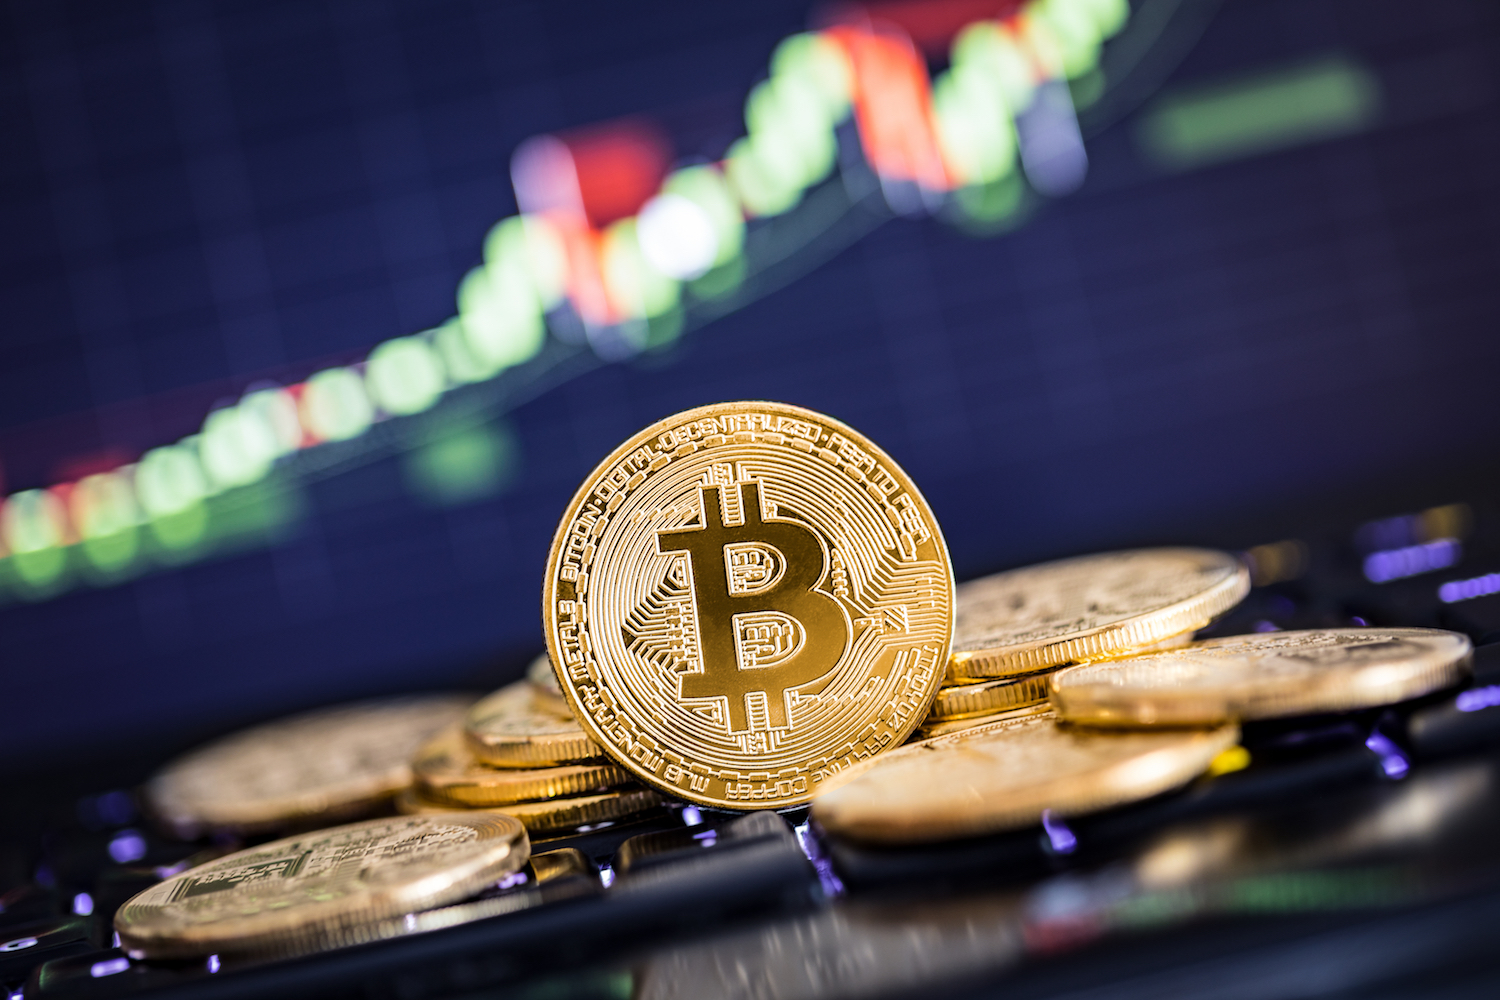 Bitcoin Eyes $3.8K After High-Volume Price Breakout